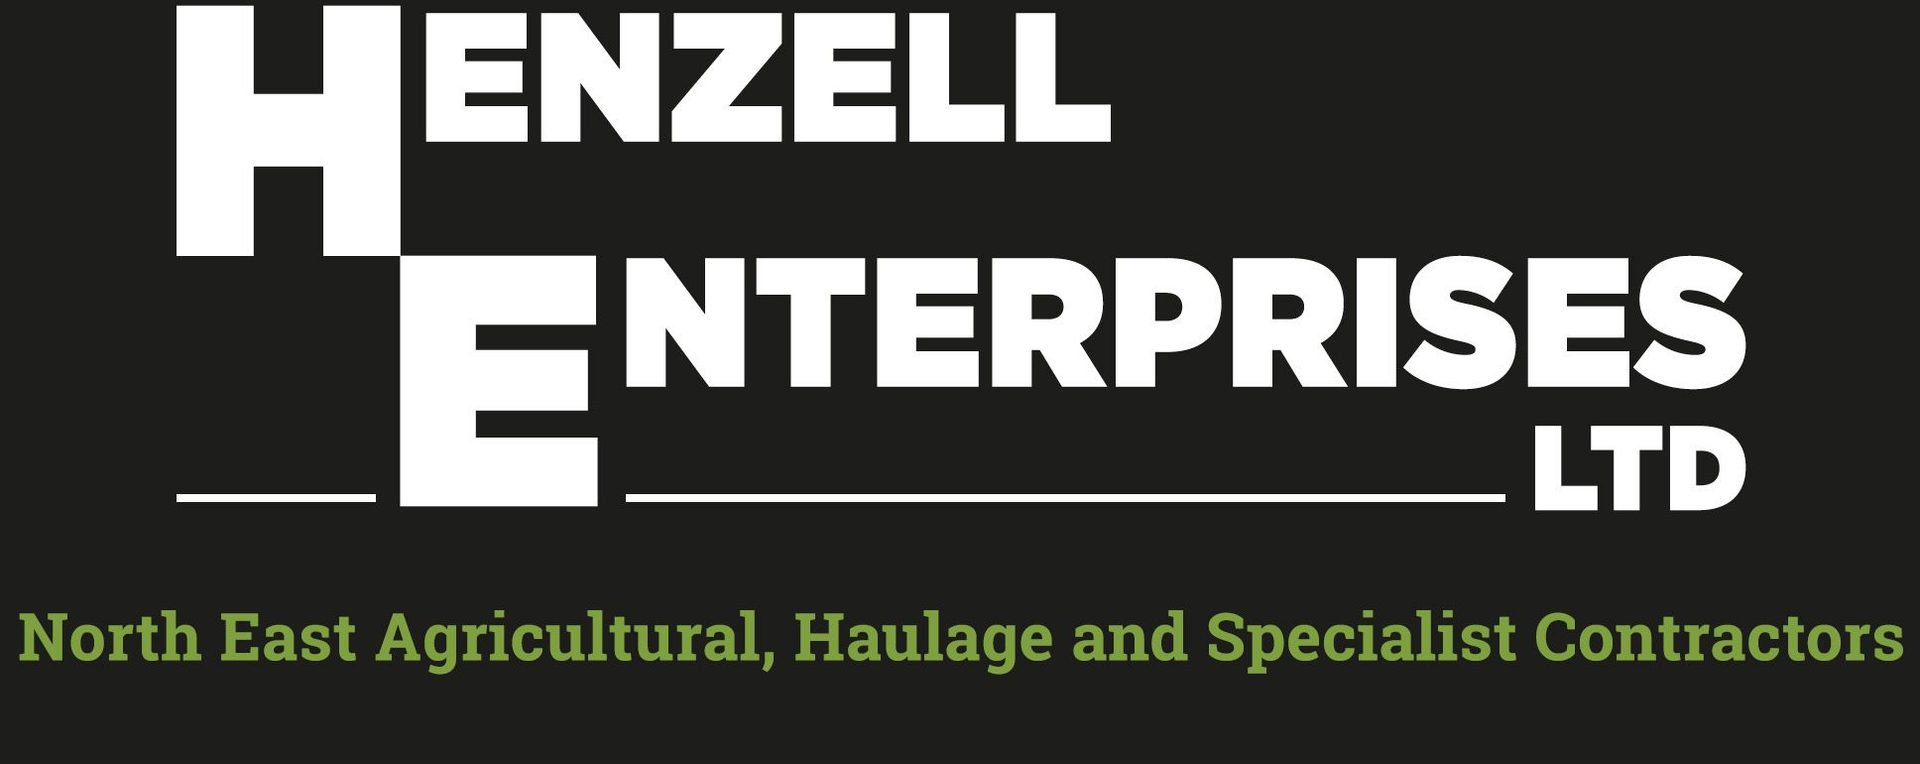 /images/project/Henzell-Logo.jpg